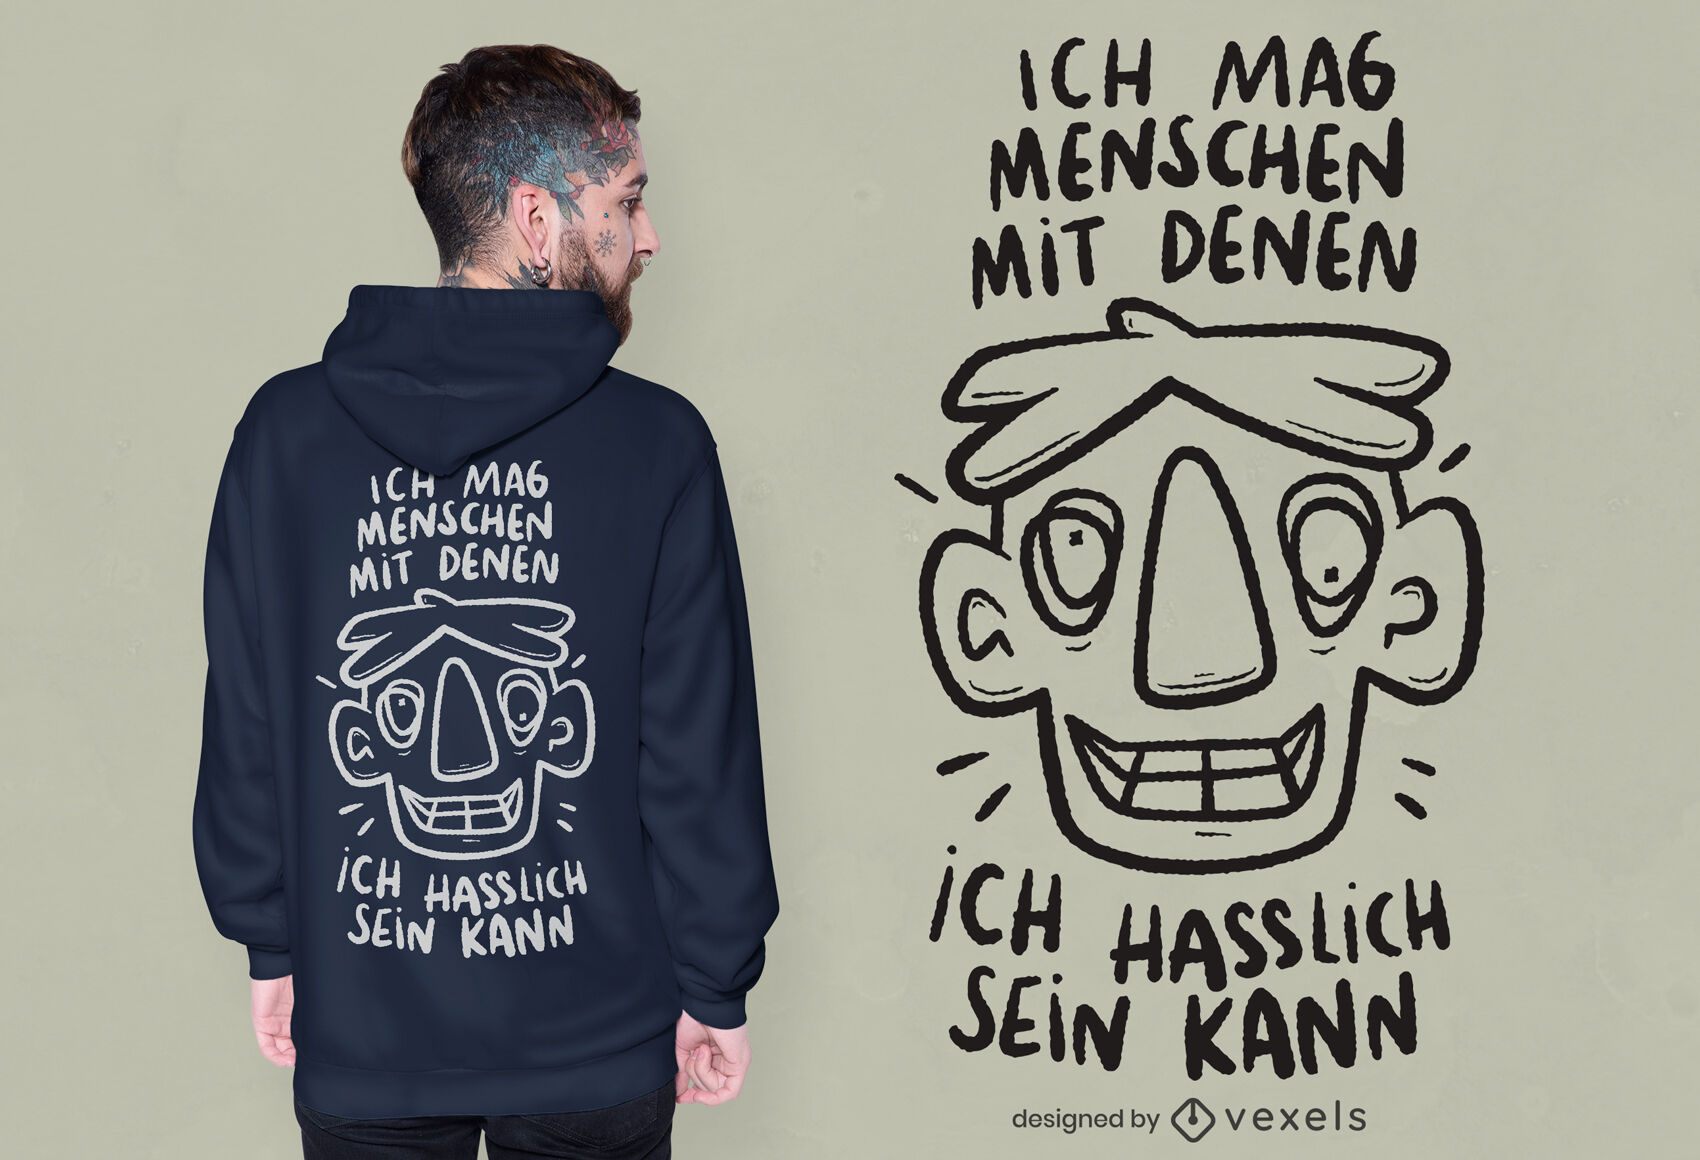 German ugly quote t-shirt design